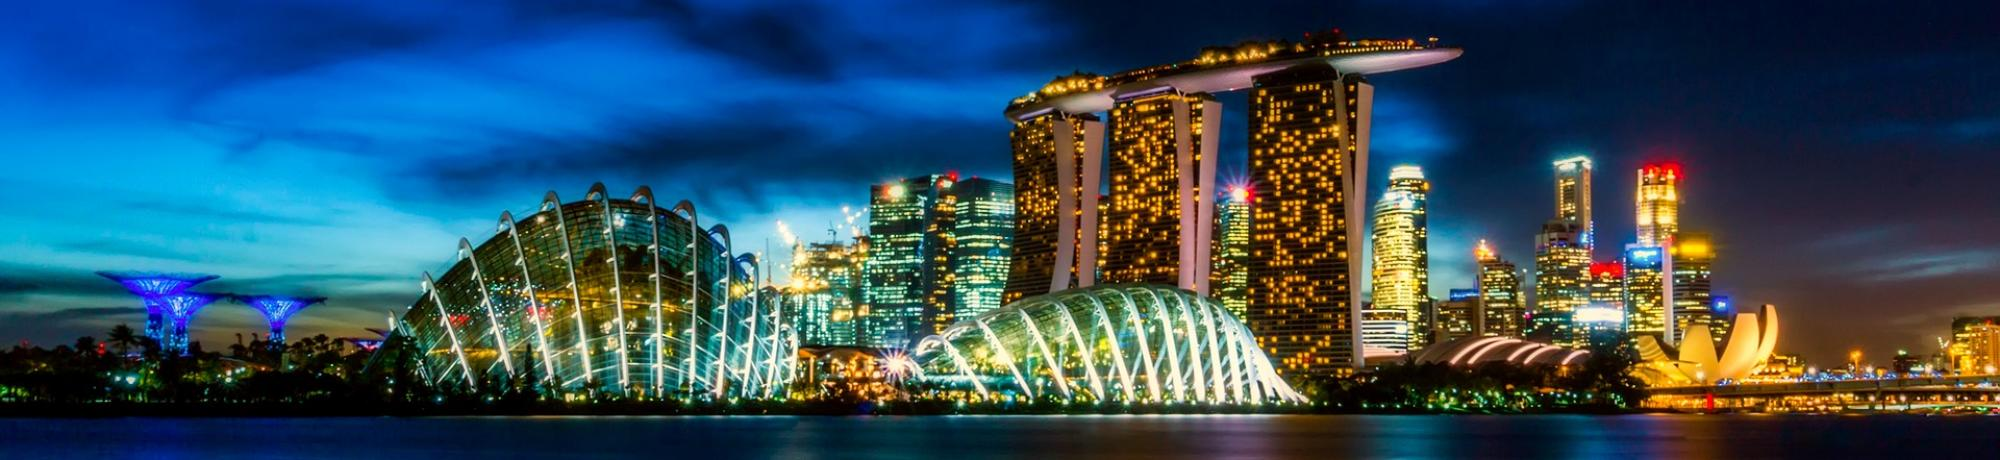 UC Davis Study Abroad, Summer Internships Abroad Singapore, Business and Communication Program, Header Image